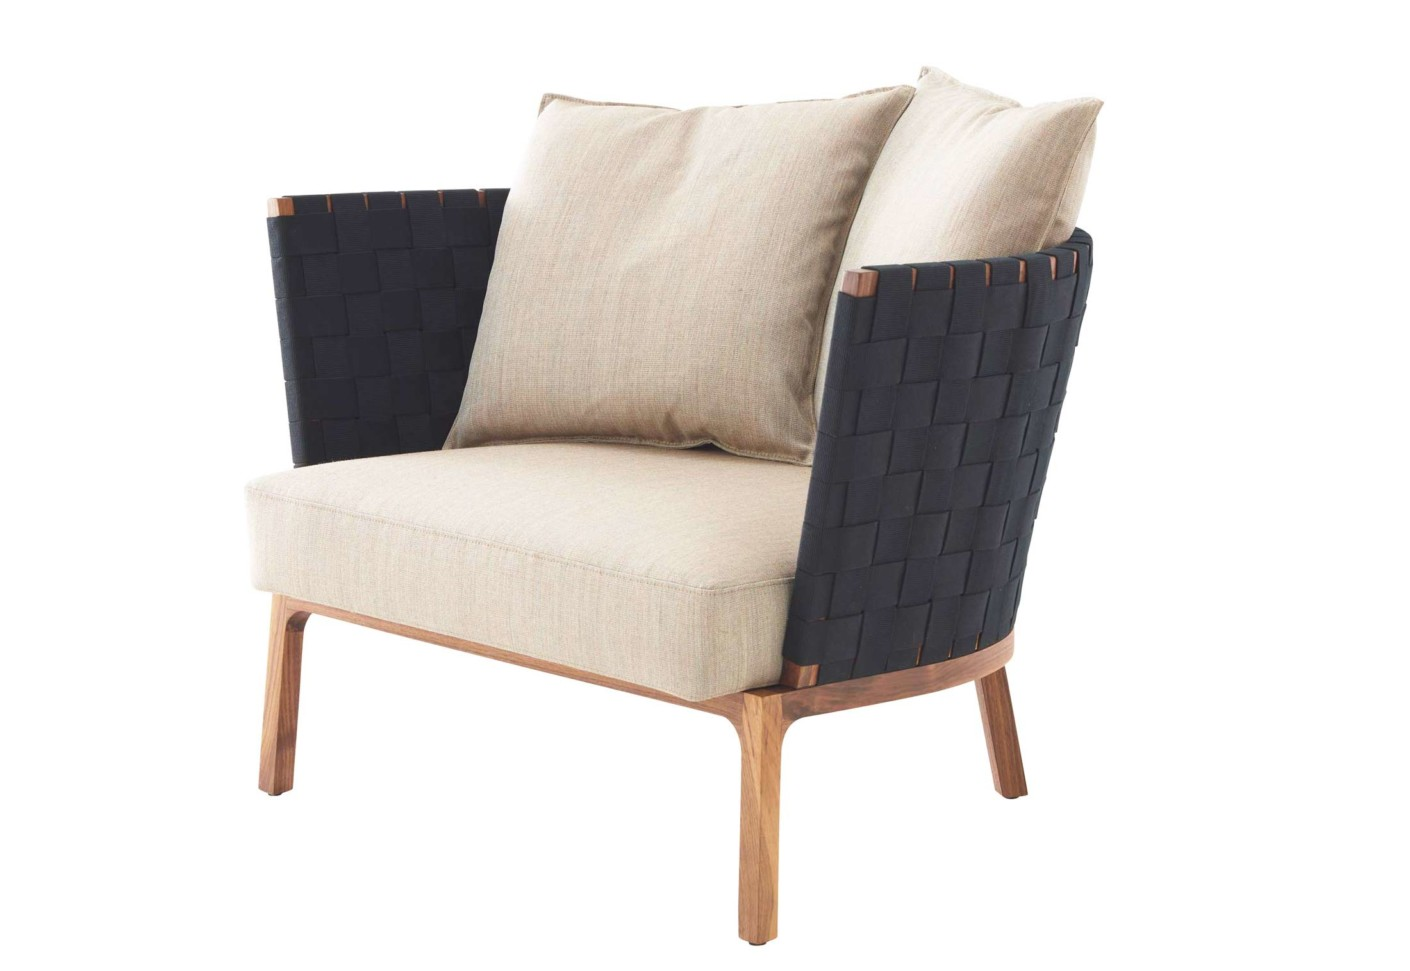 mon repos armchair by ligne roset stylepark. Black Bedroom Furniture Sets. Home Design Ideas